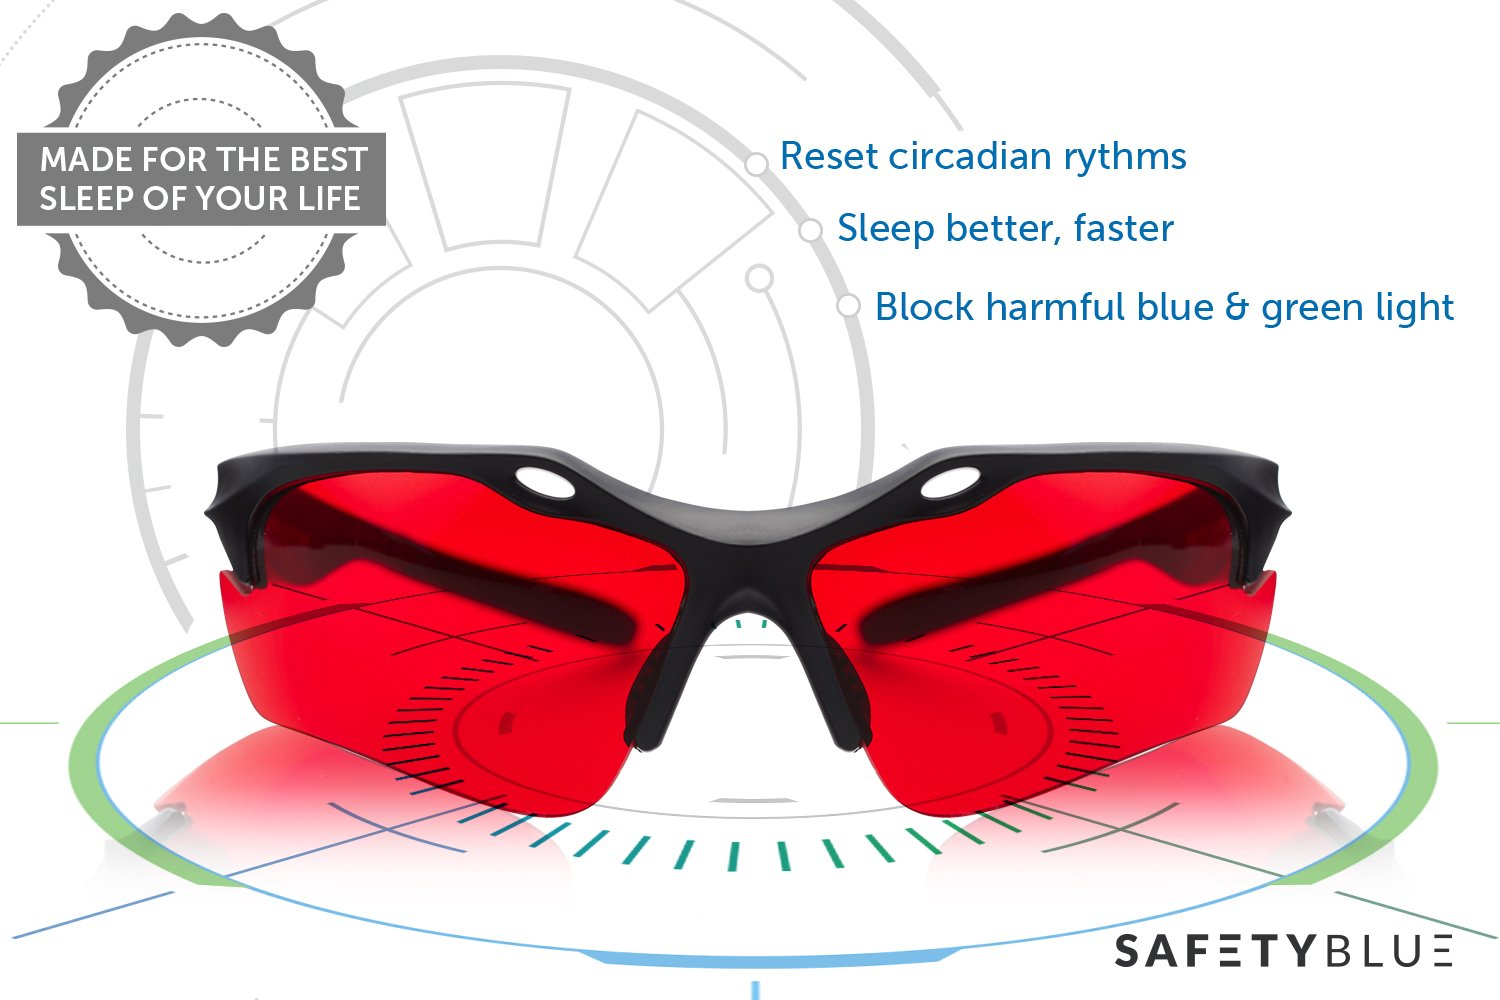 Sleep Savior ® Red Night Glasses - Blocks More Disruptive Light Than Blue Blockers - for Men and Women - Therapeutic Lenses to Increase Melatonin Naturally and Help You Sleep Better by SafetyBlue